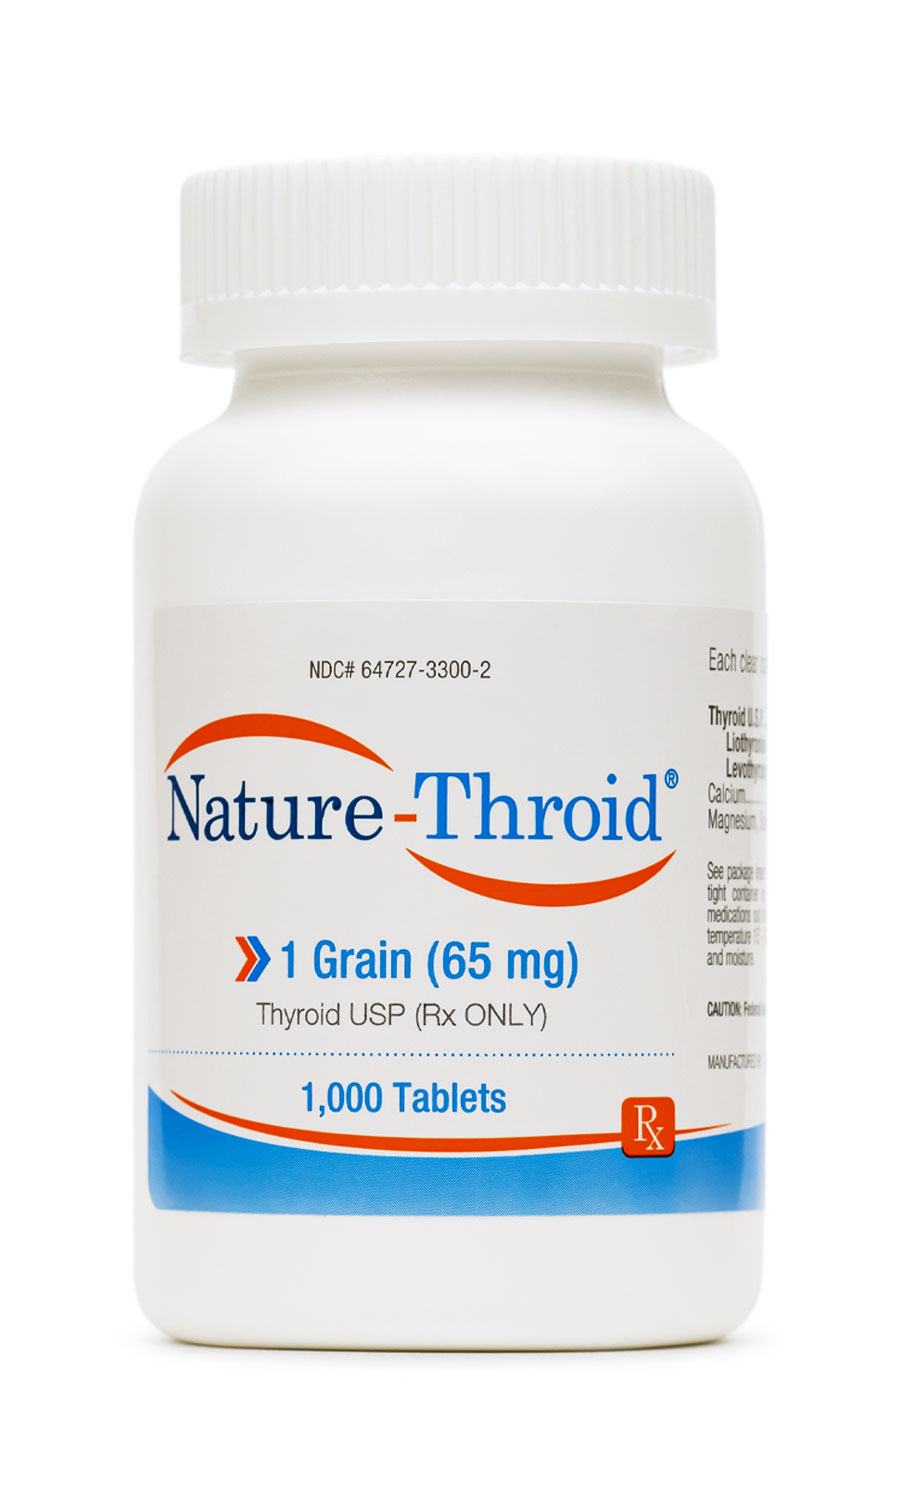 Nature-Throid Tablets